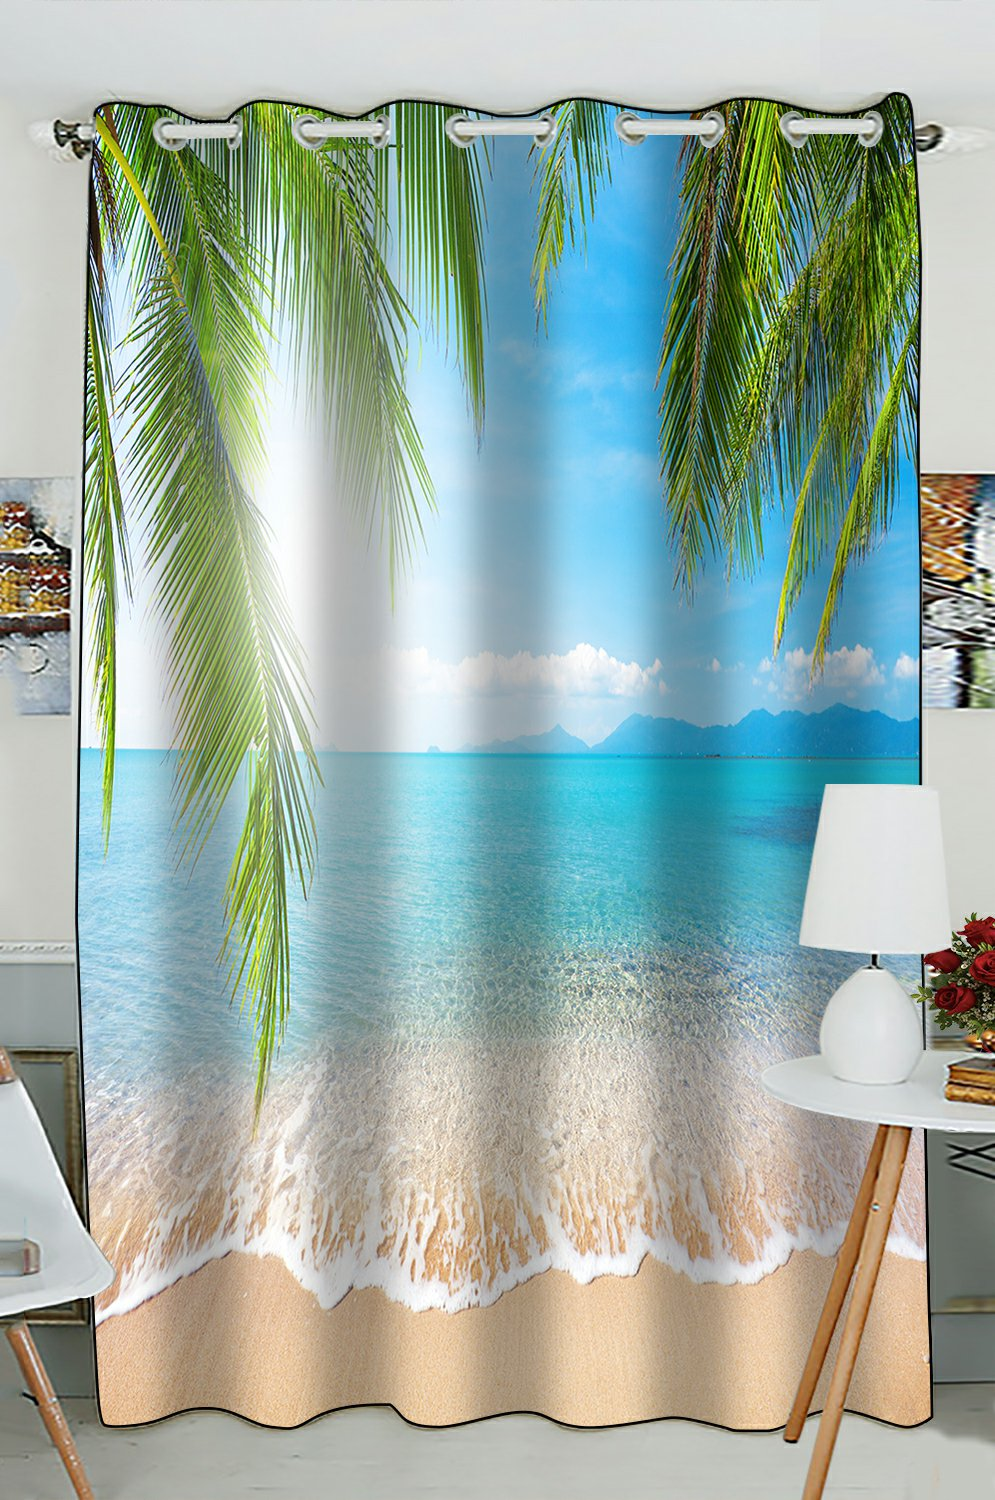 phfzk bule sea ocean window curtain tropical beach palm tree window curtain blackout curtain for bedroom living room kitchen room 52x84 inches one